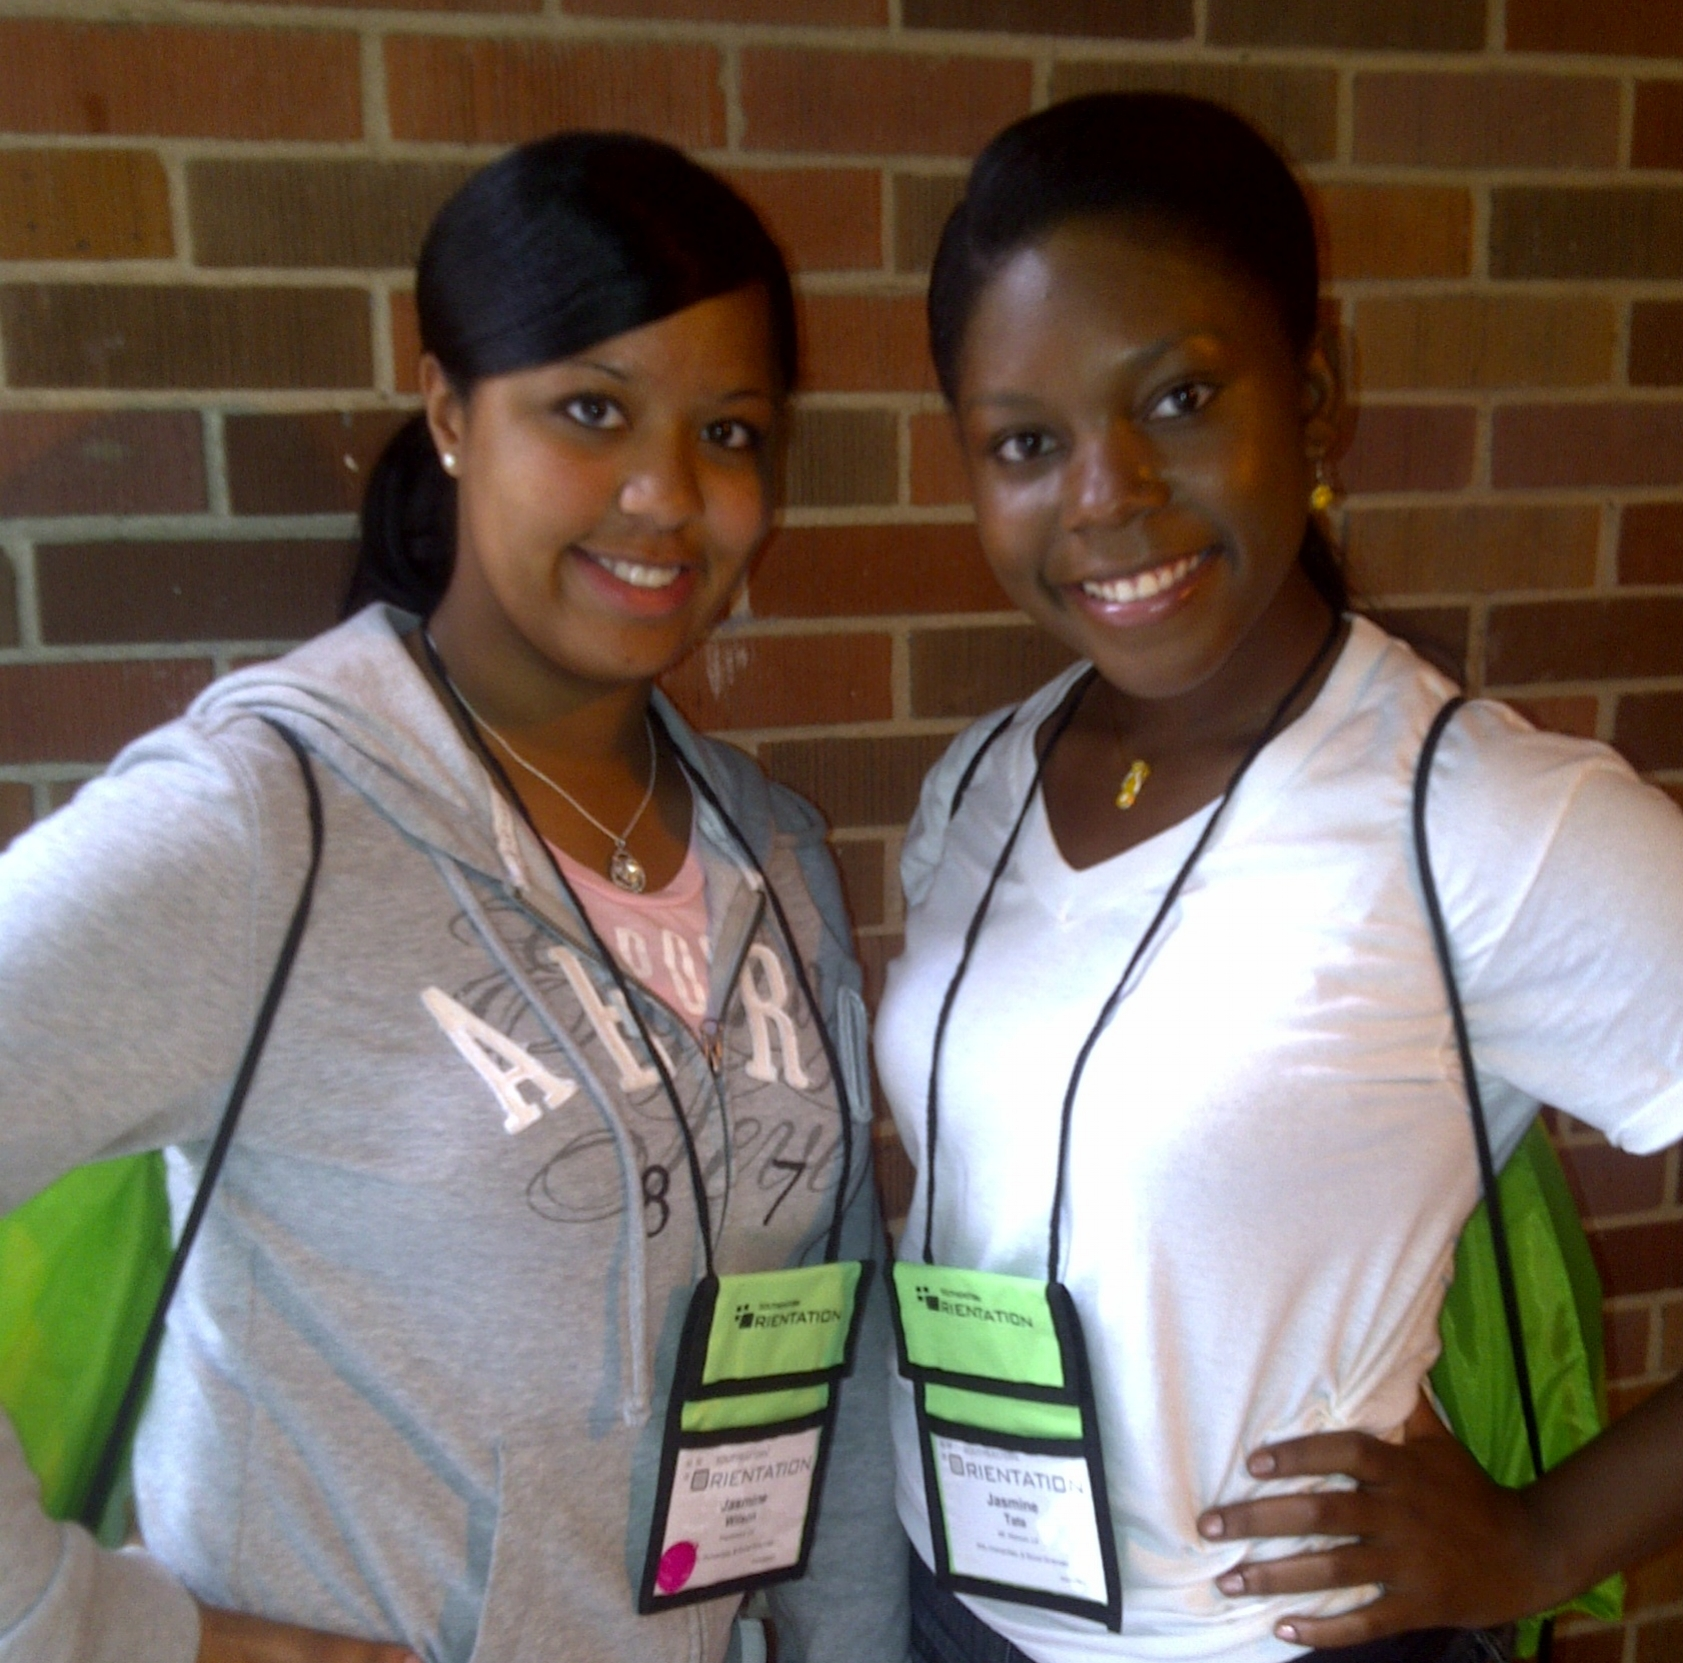 My best friend, Jasmine, and I during freshman orientation June 15, 2011 at Southeastern Louisiana University.